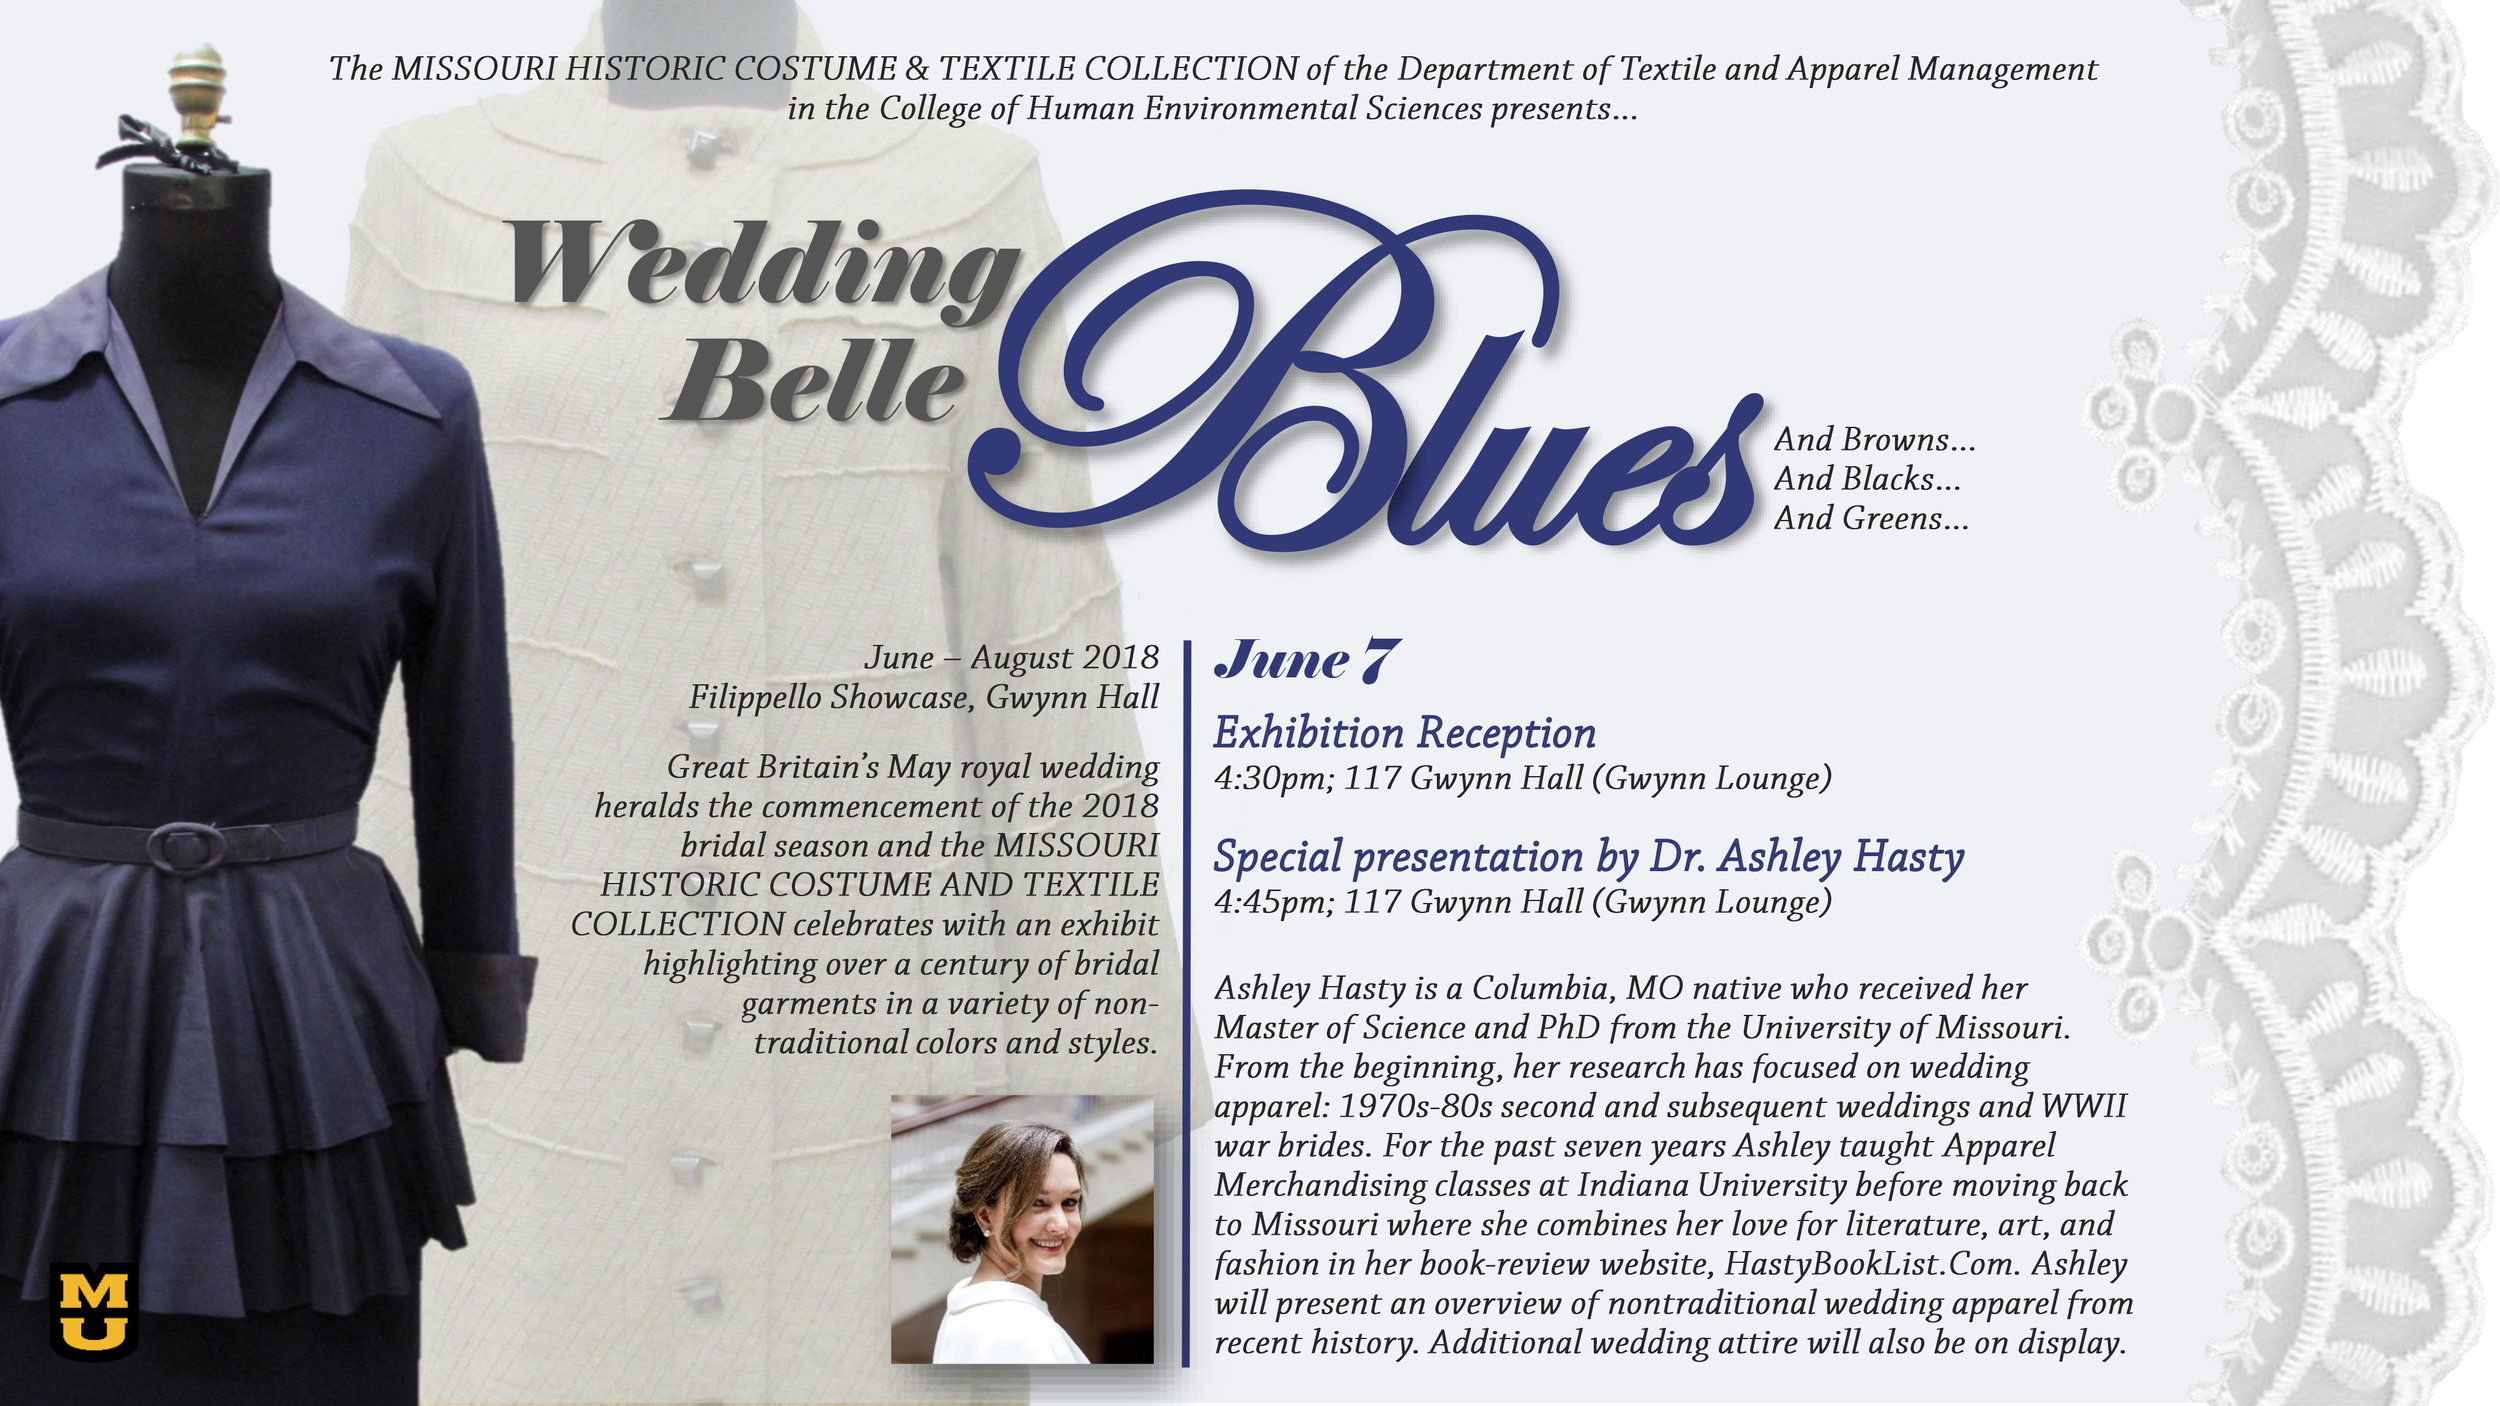 Wedding Belle Blues Mailer.jpg